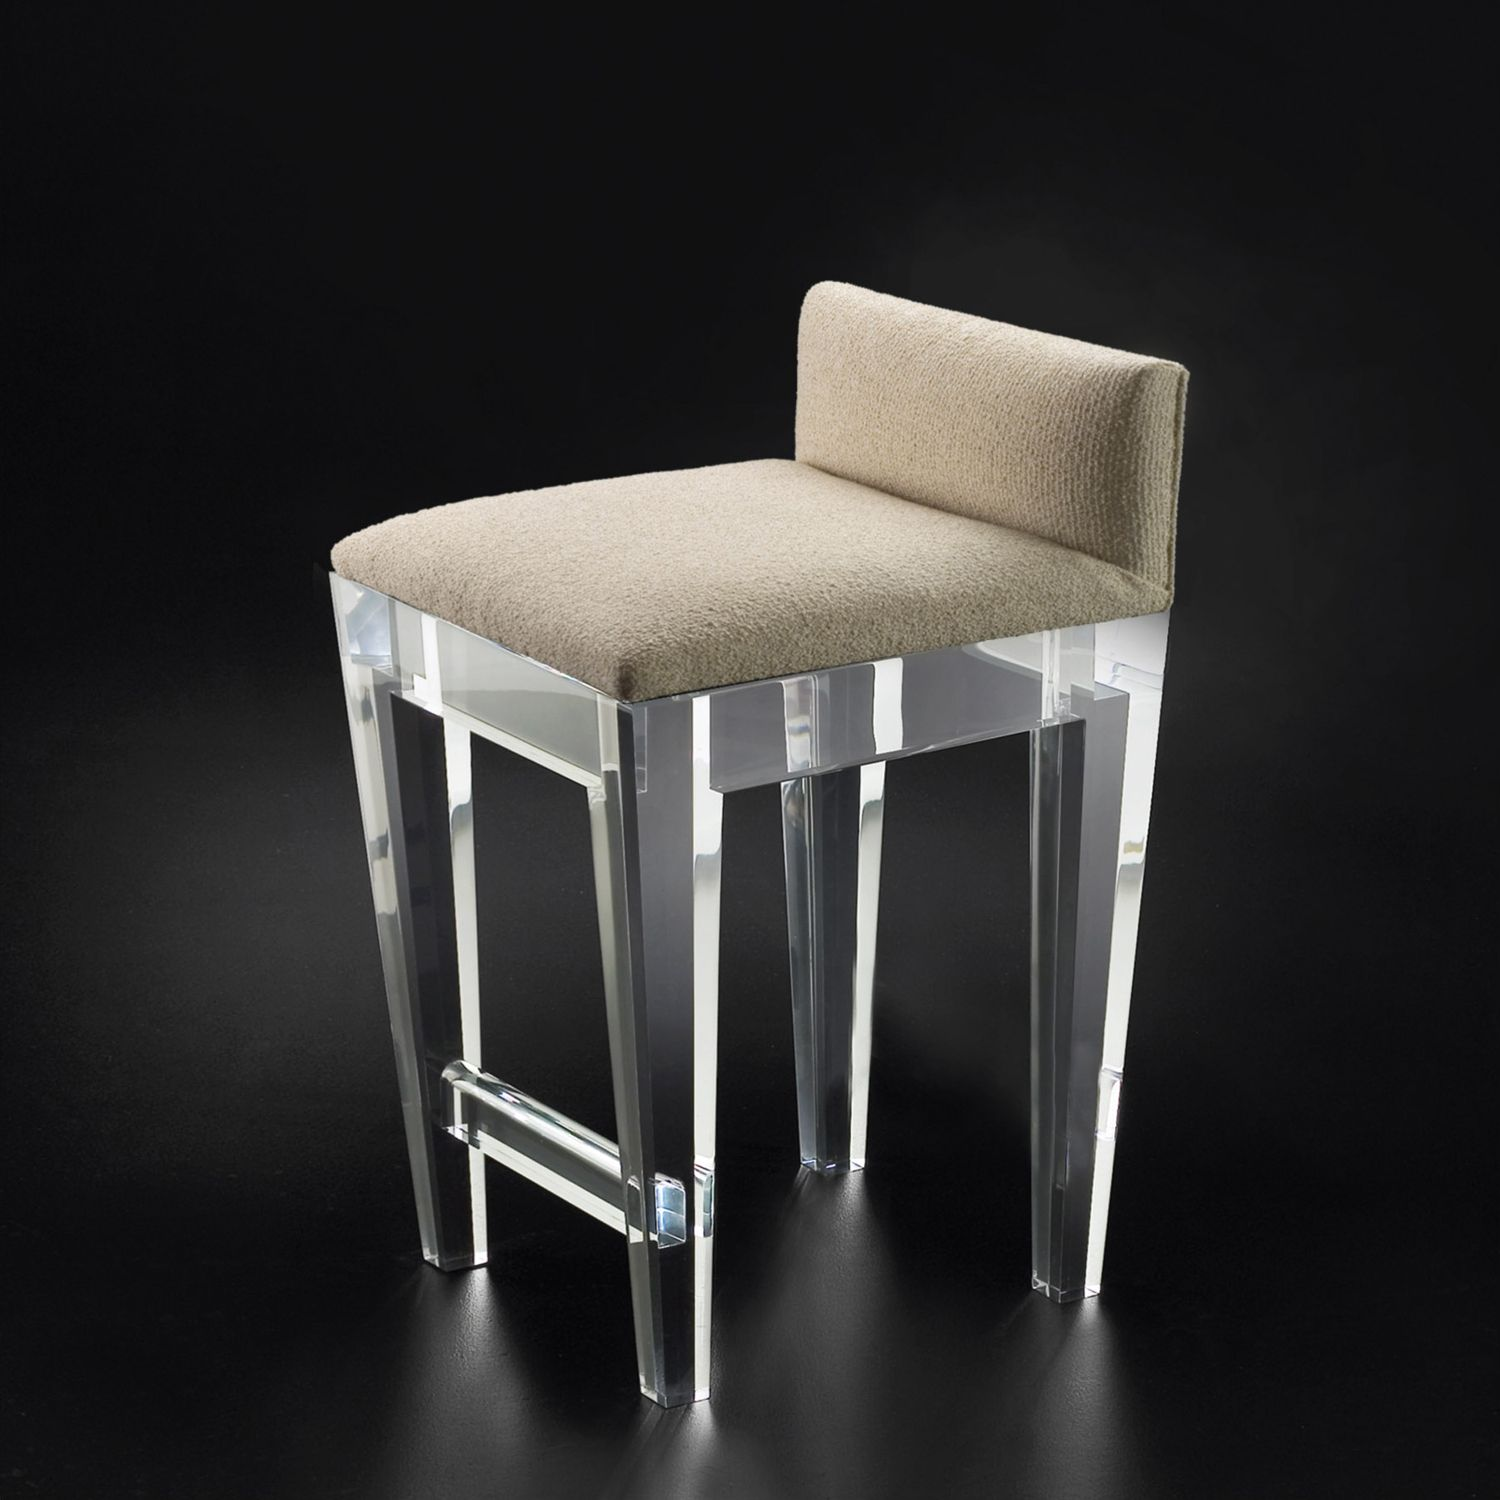 acrylic counter height stools